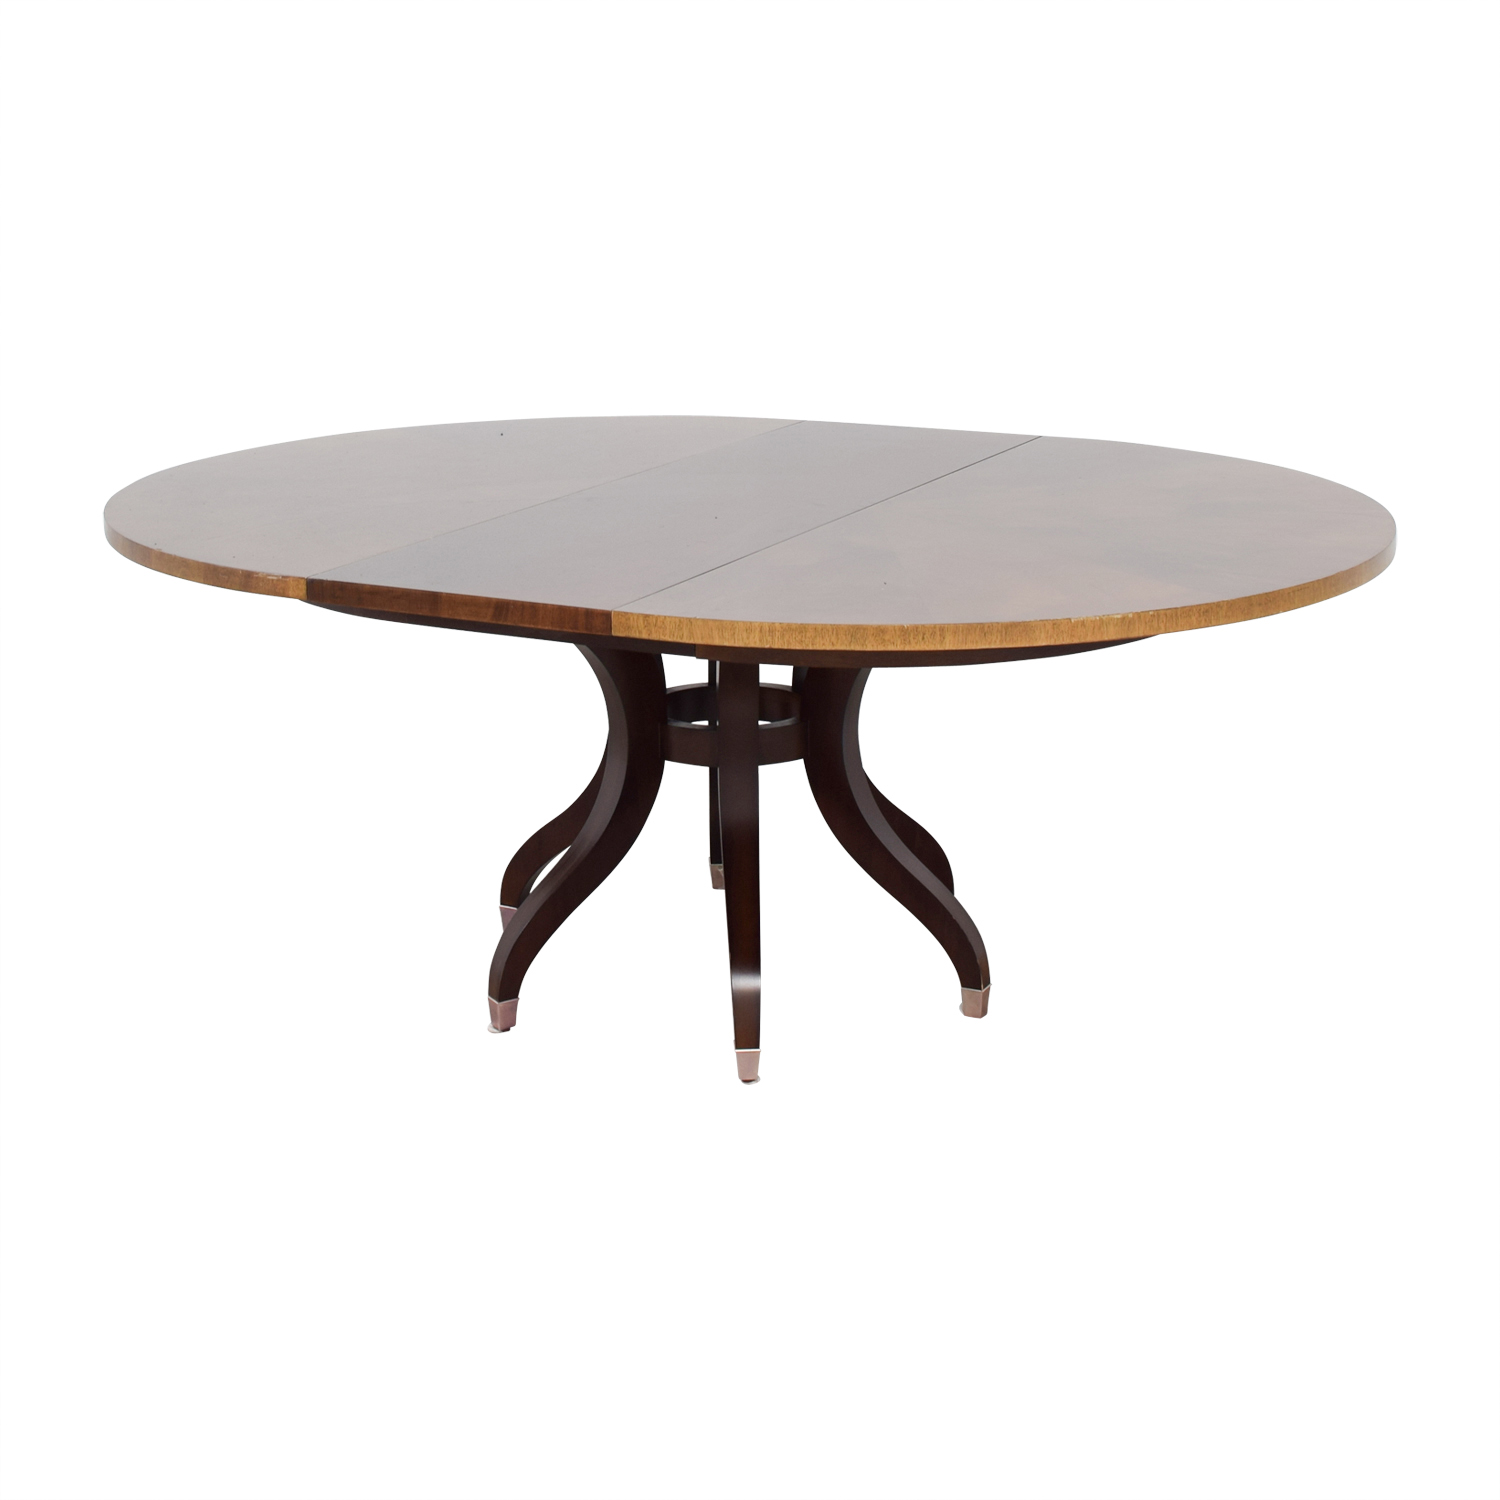 73 off ethan allen ethan allen ashcroft dining table tables - Ethan allen kitchen tables ...